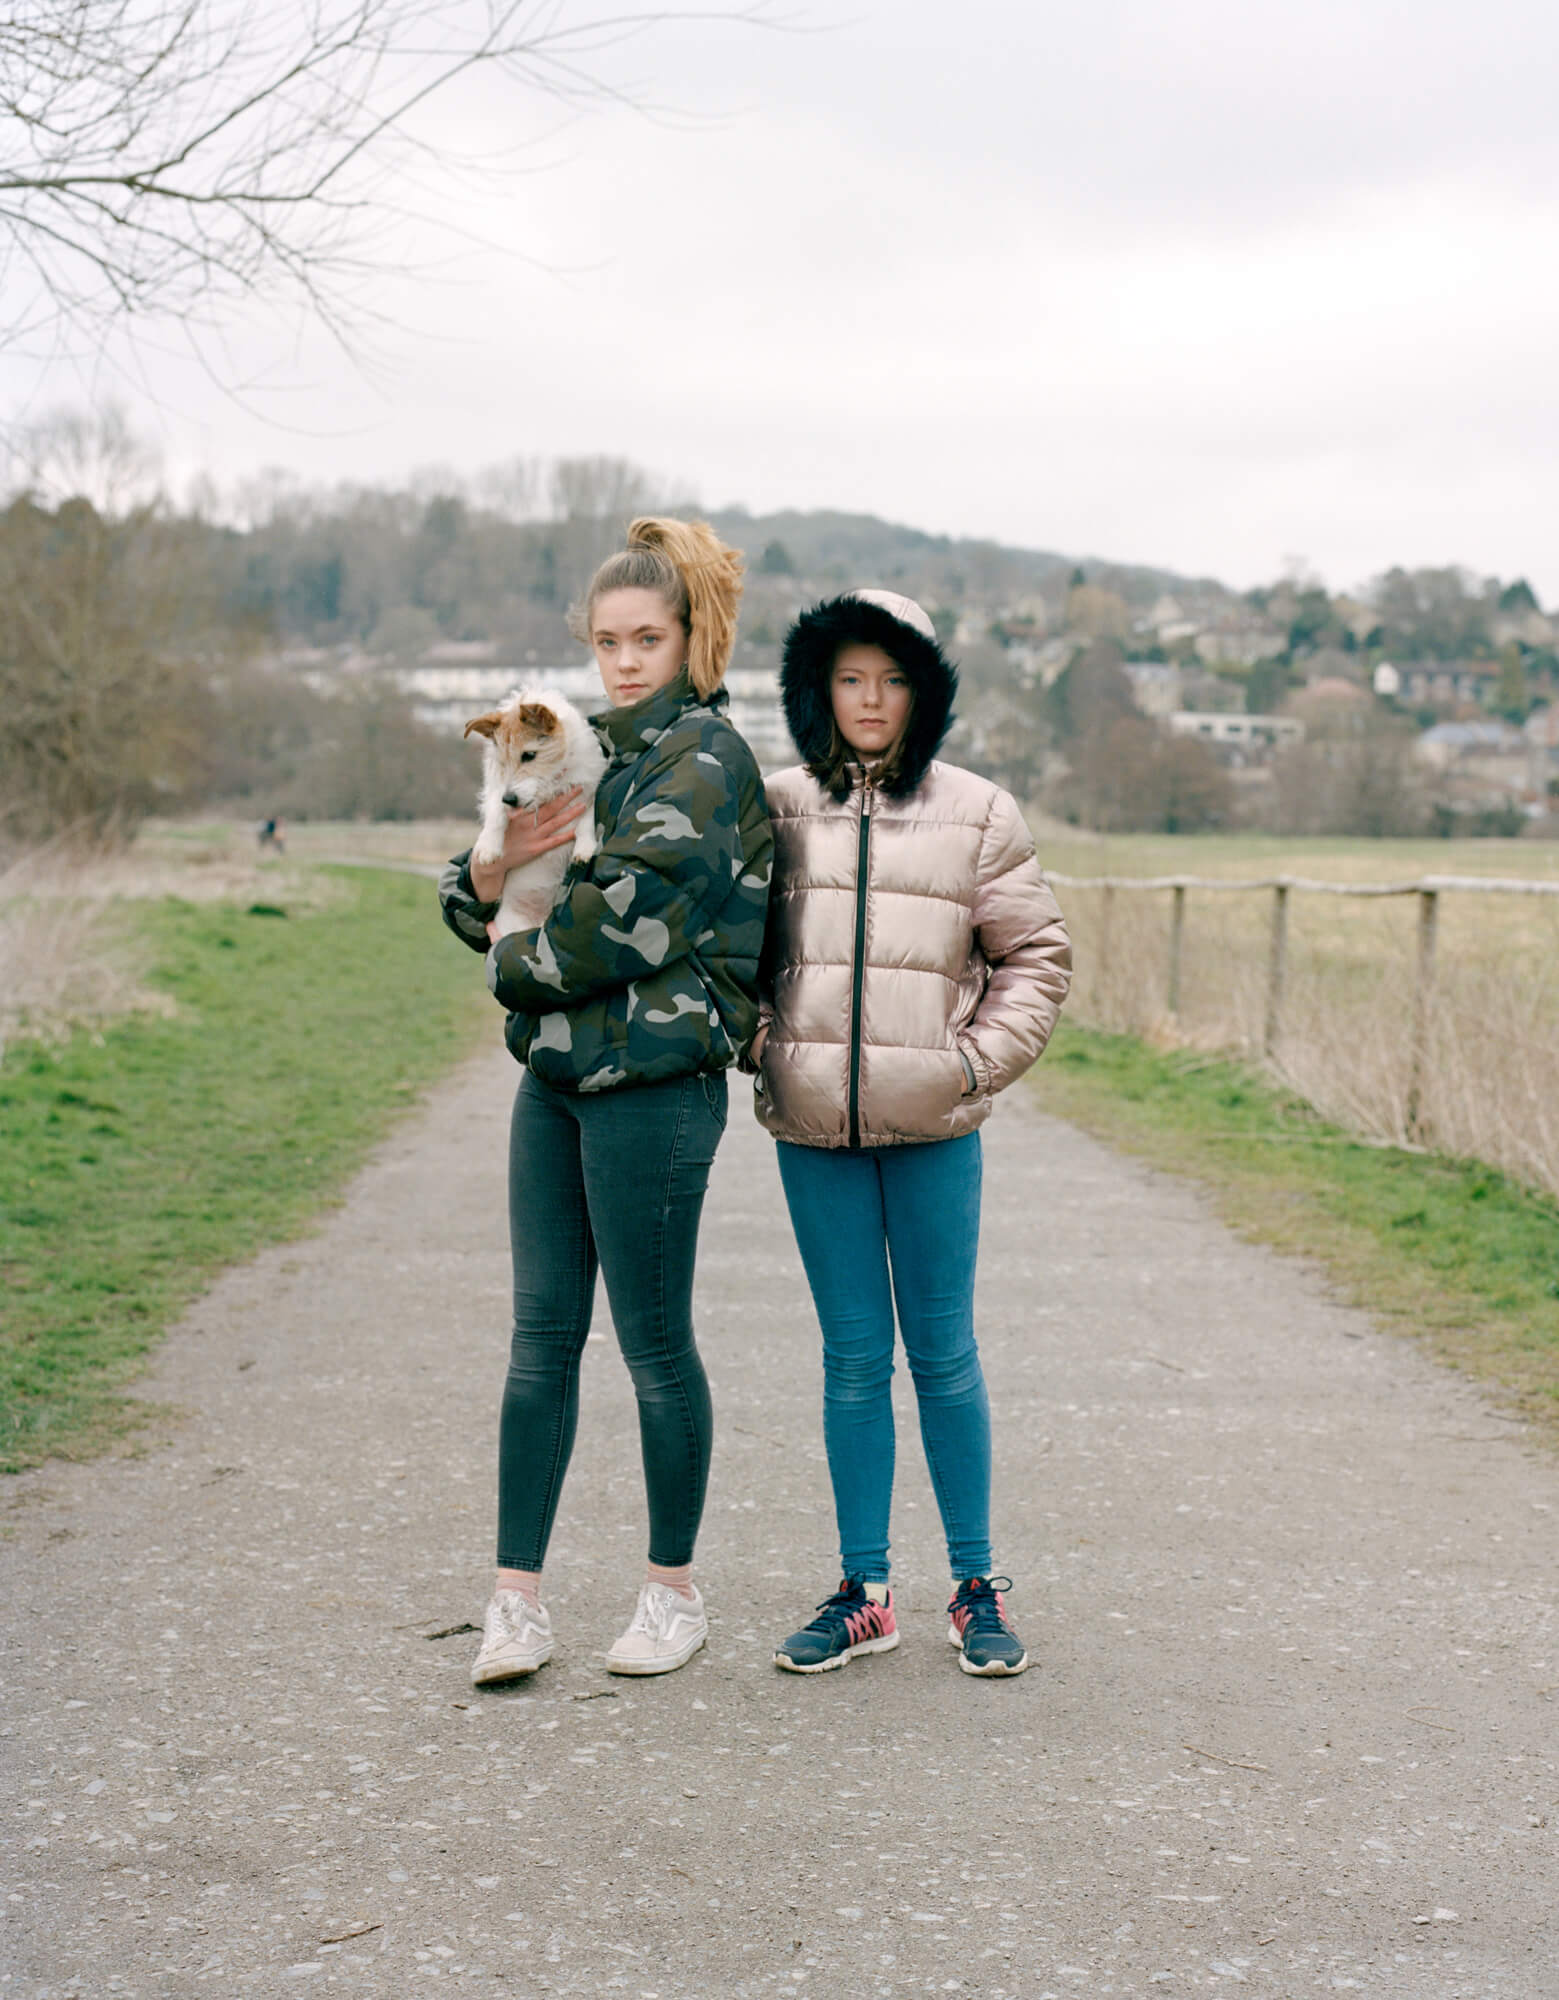 Two girls stood on path with a grey background by a river in a park